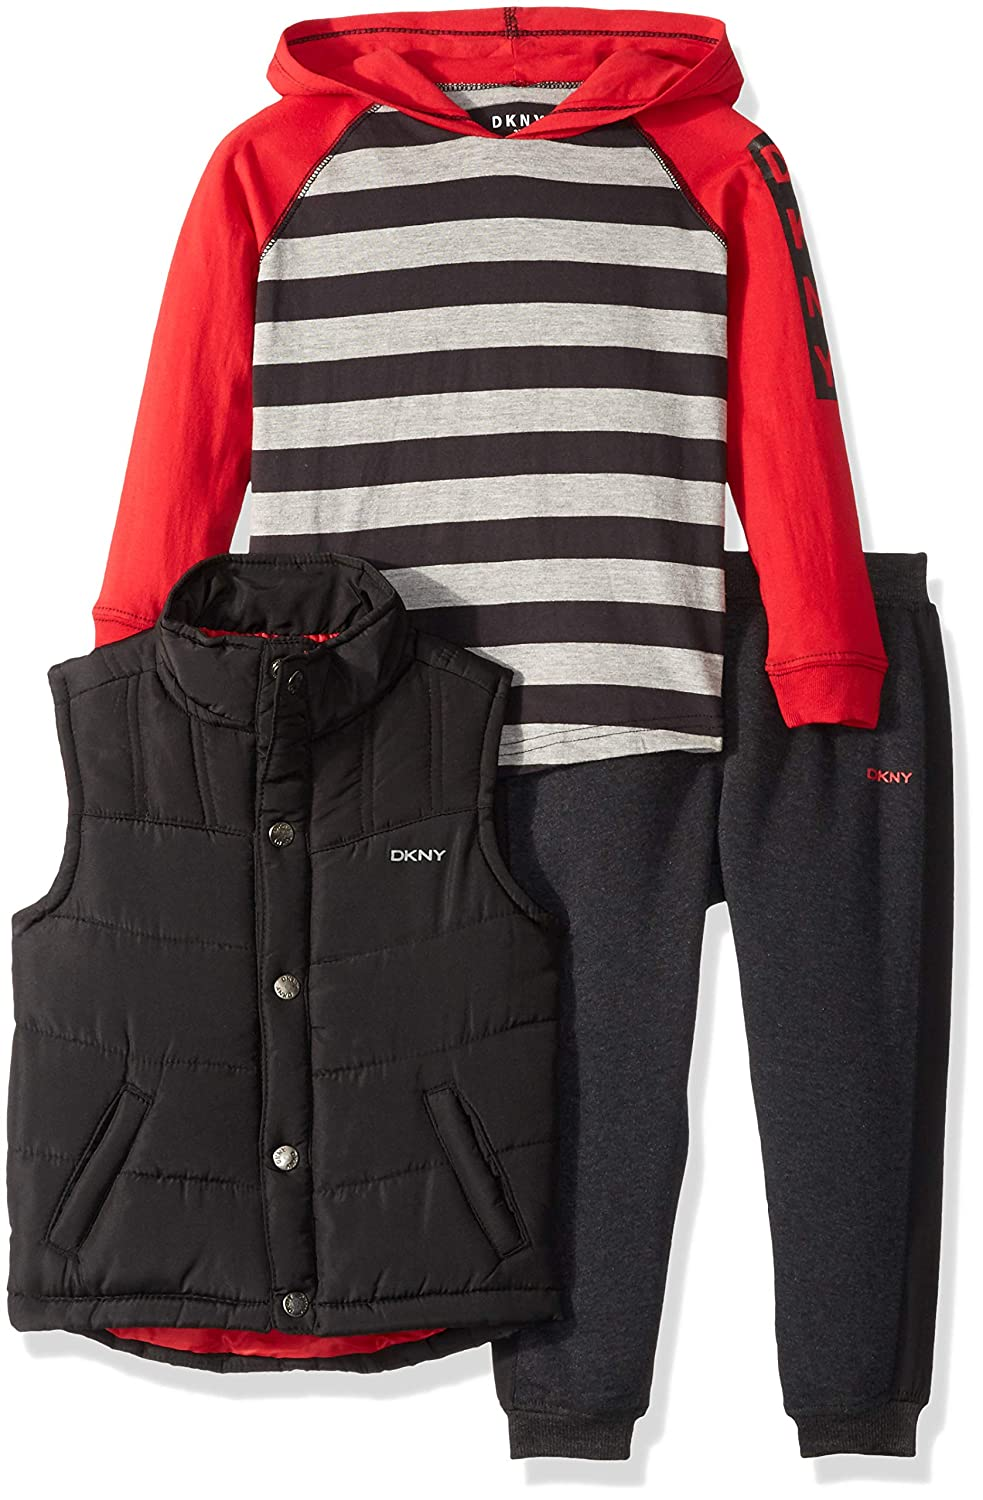 DKNY Boys' Clark Puffer Vest, Hoodie and Jog Pant, DB_0452